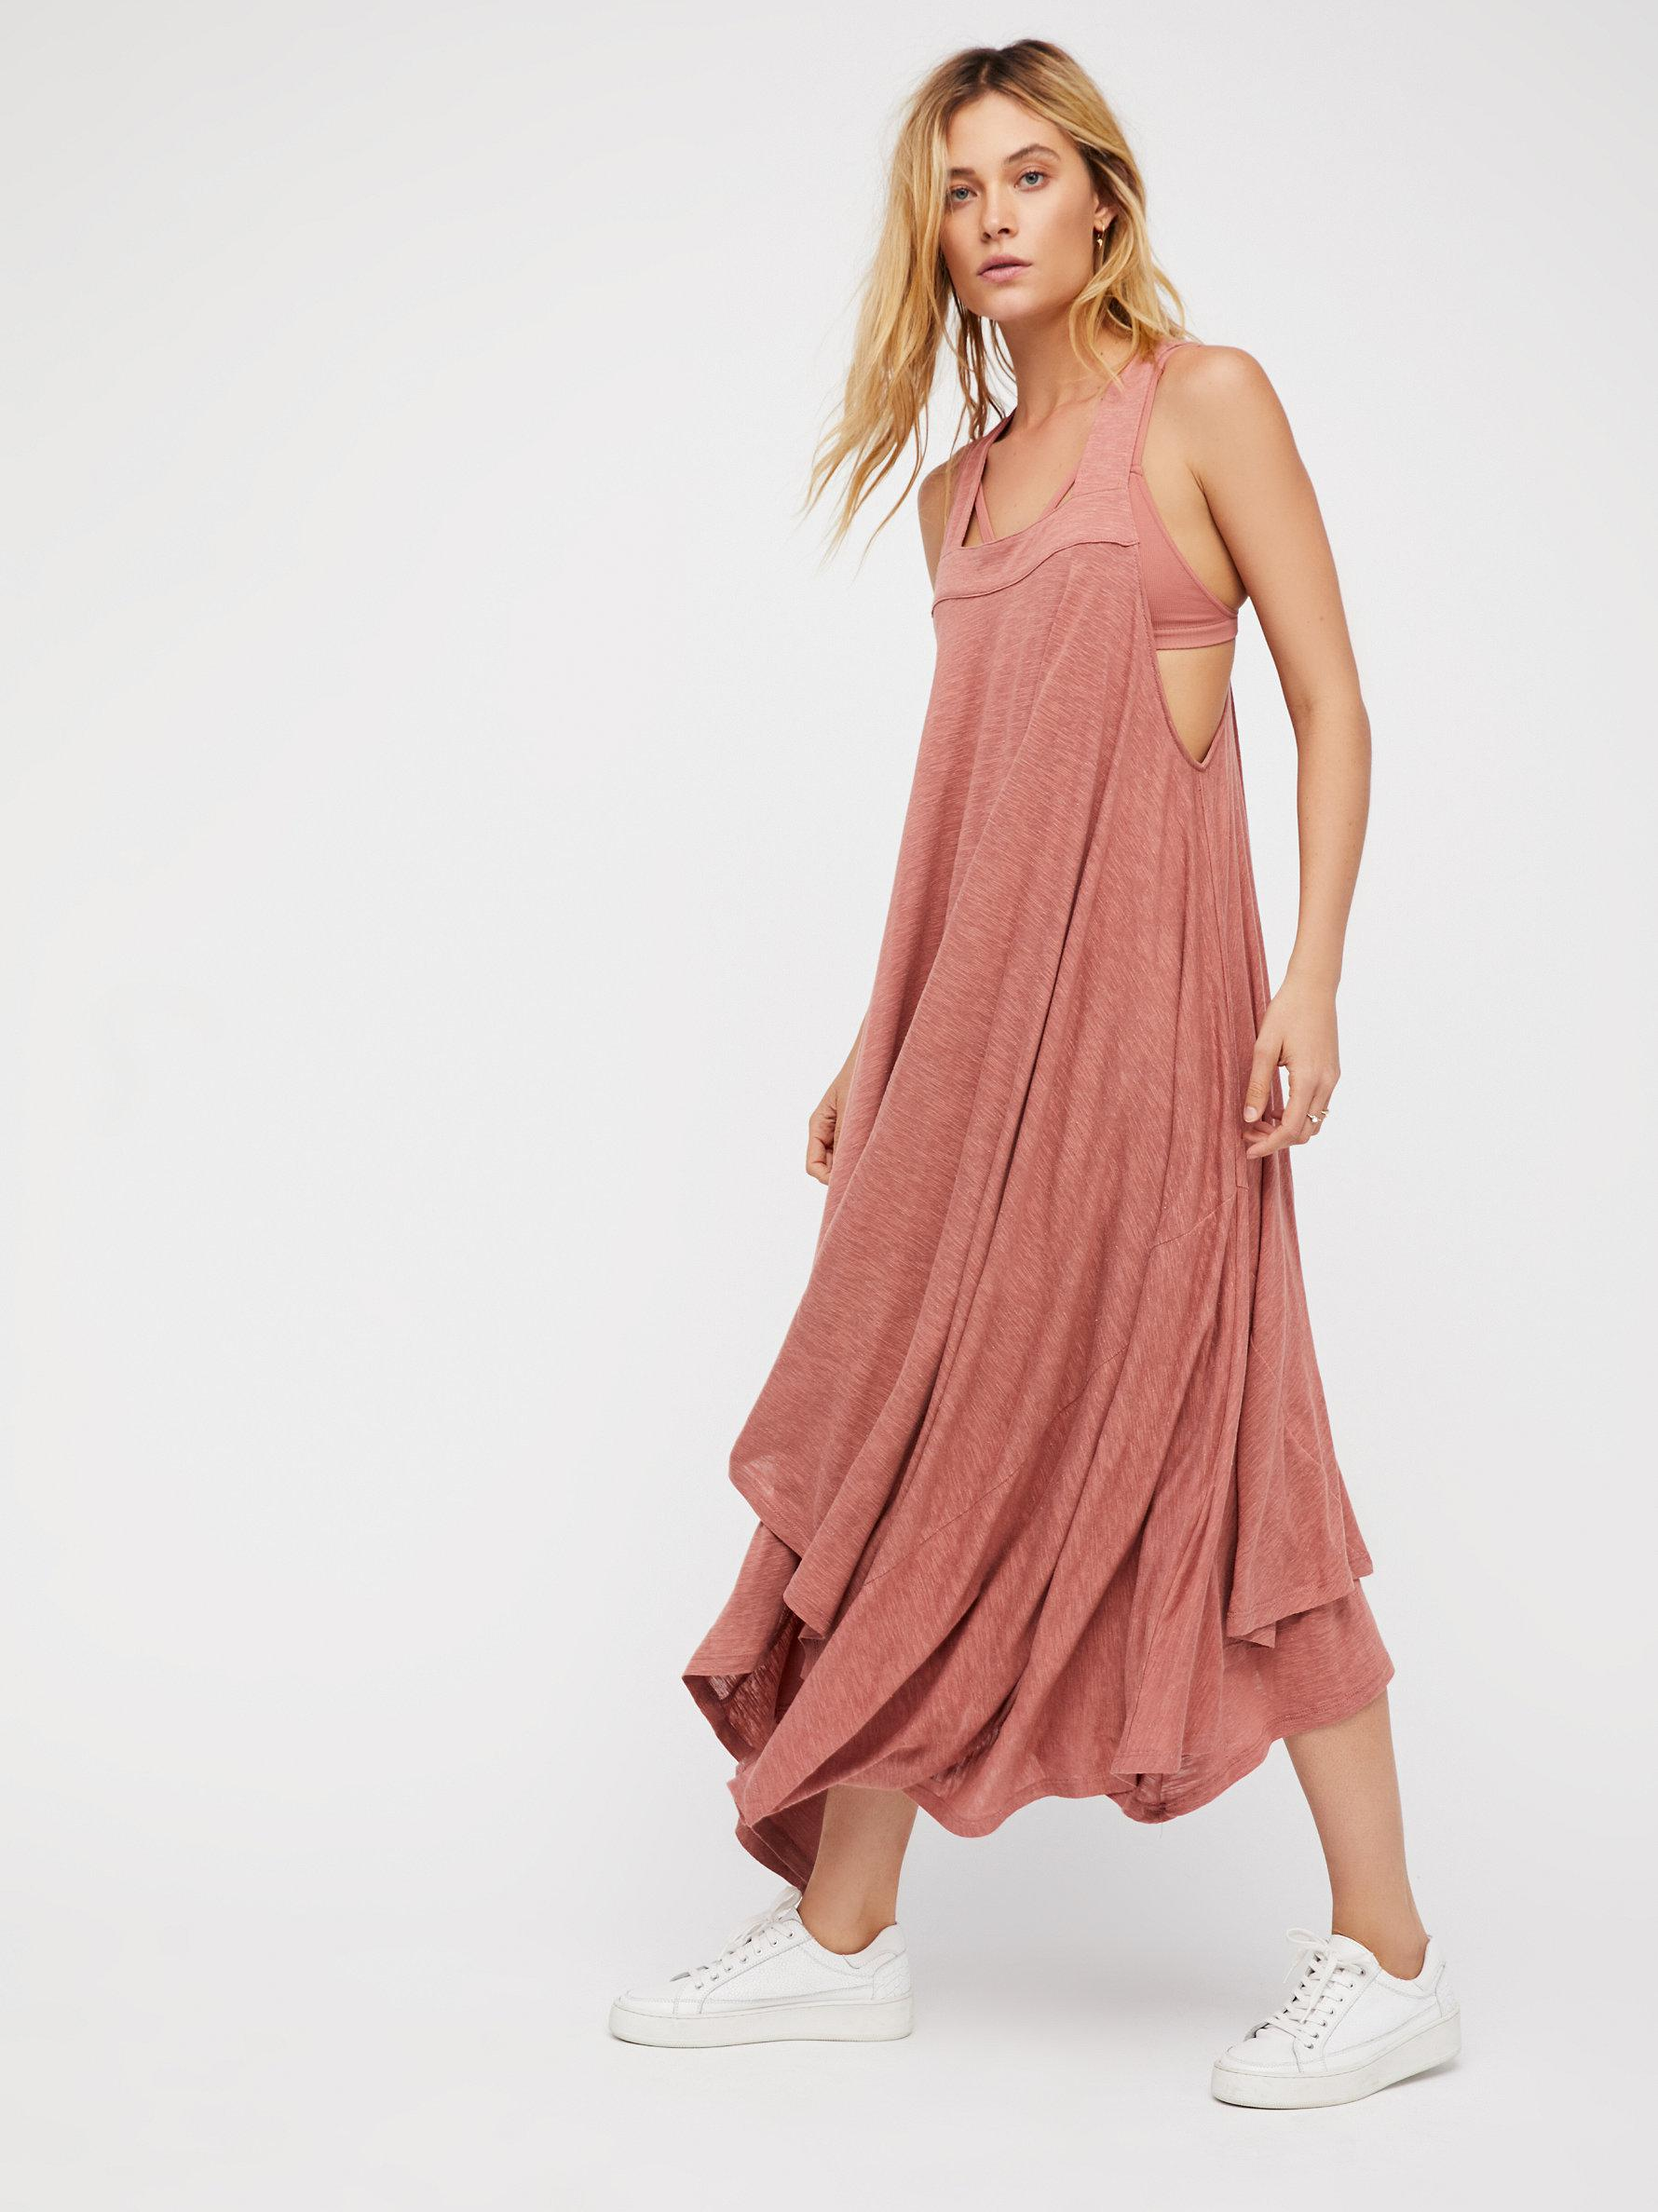 Lyst - Free People Double Trouble Maxi Dress